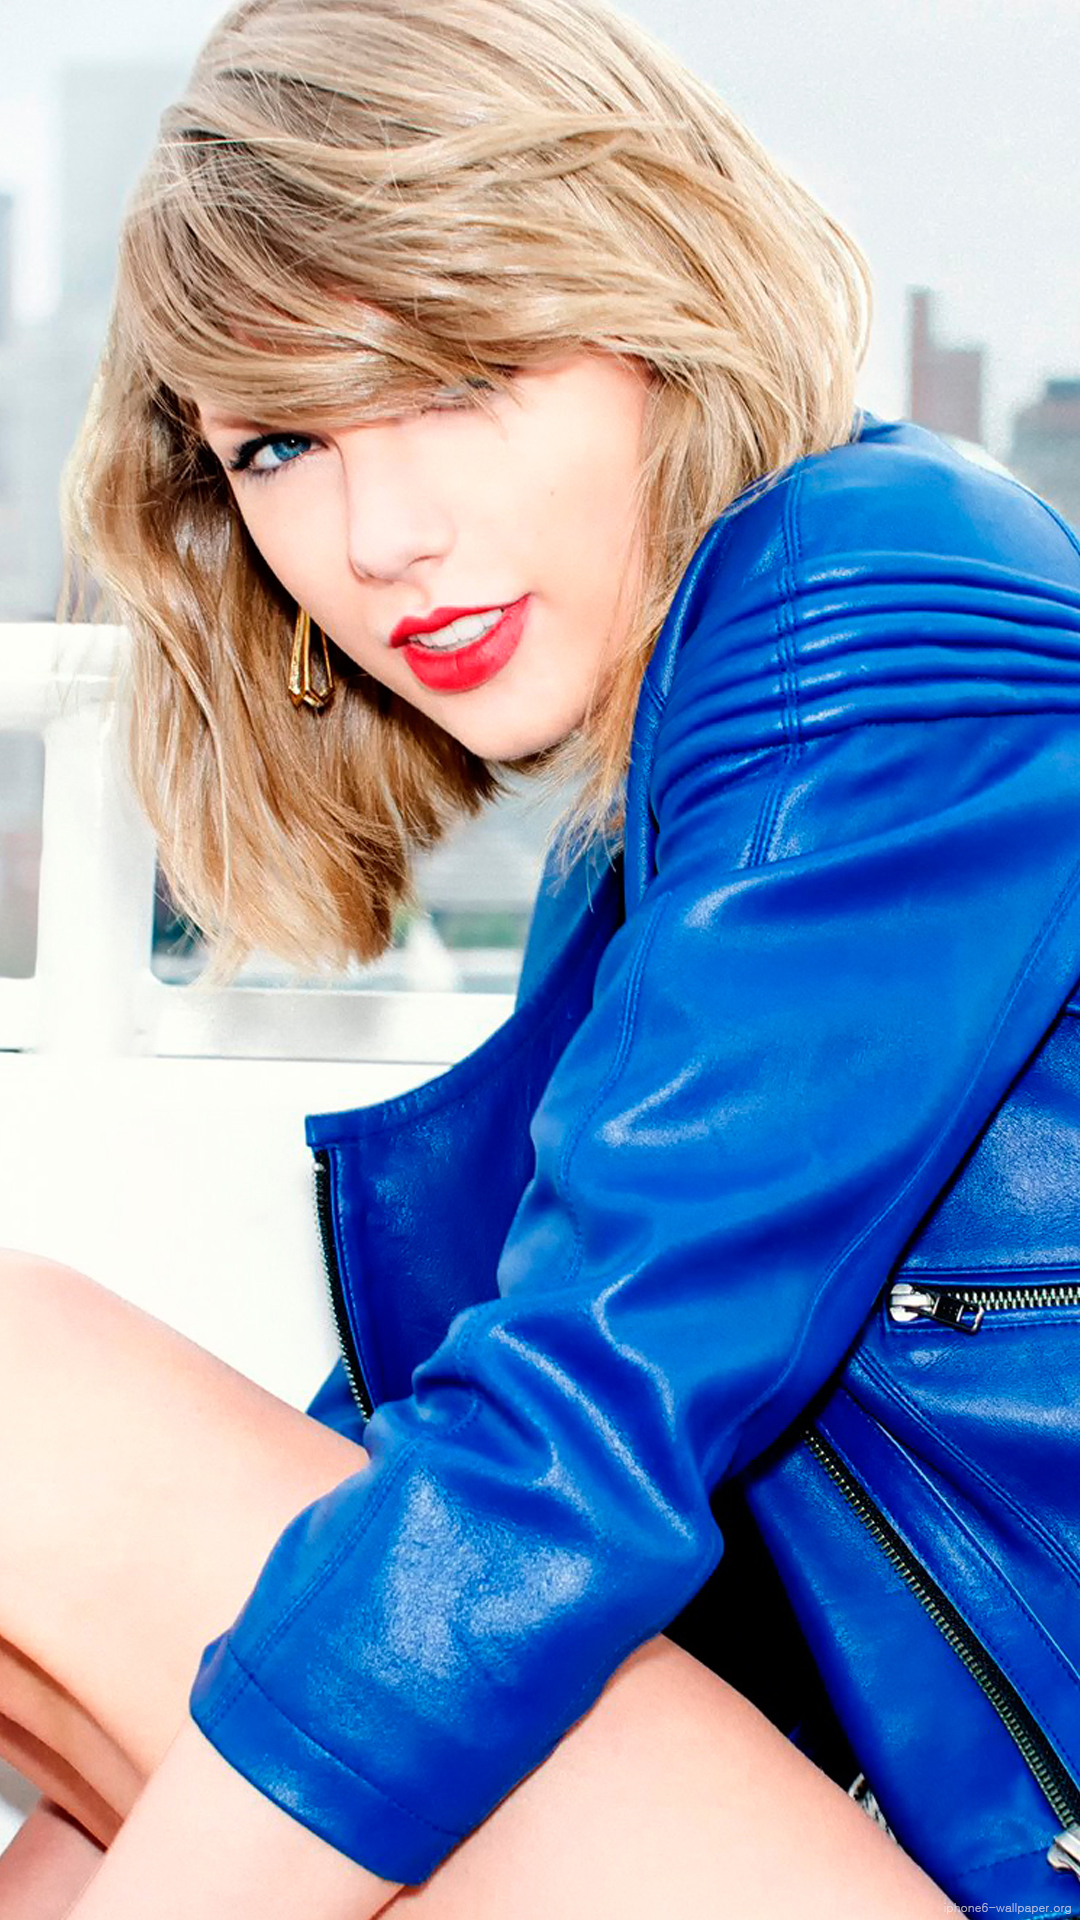 50 Taylor Swift Wallpaper For Iphone On Wallpapersafari